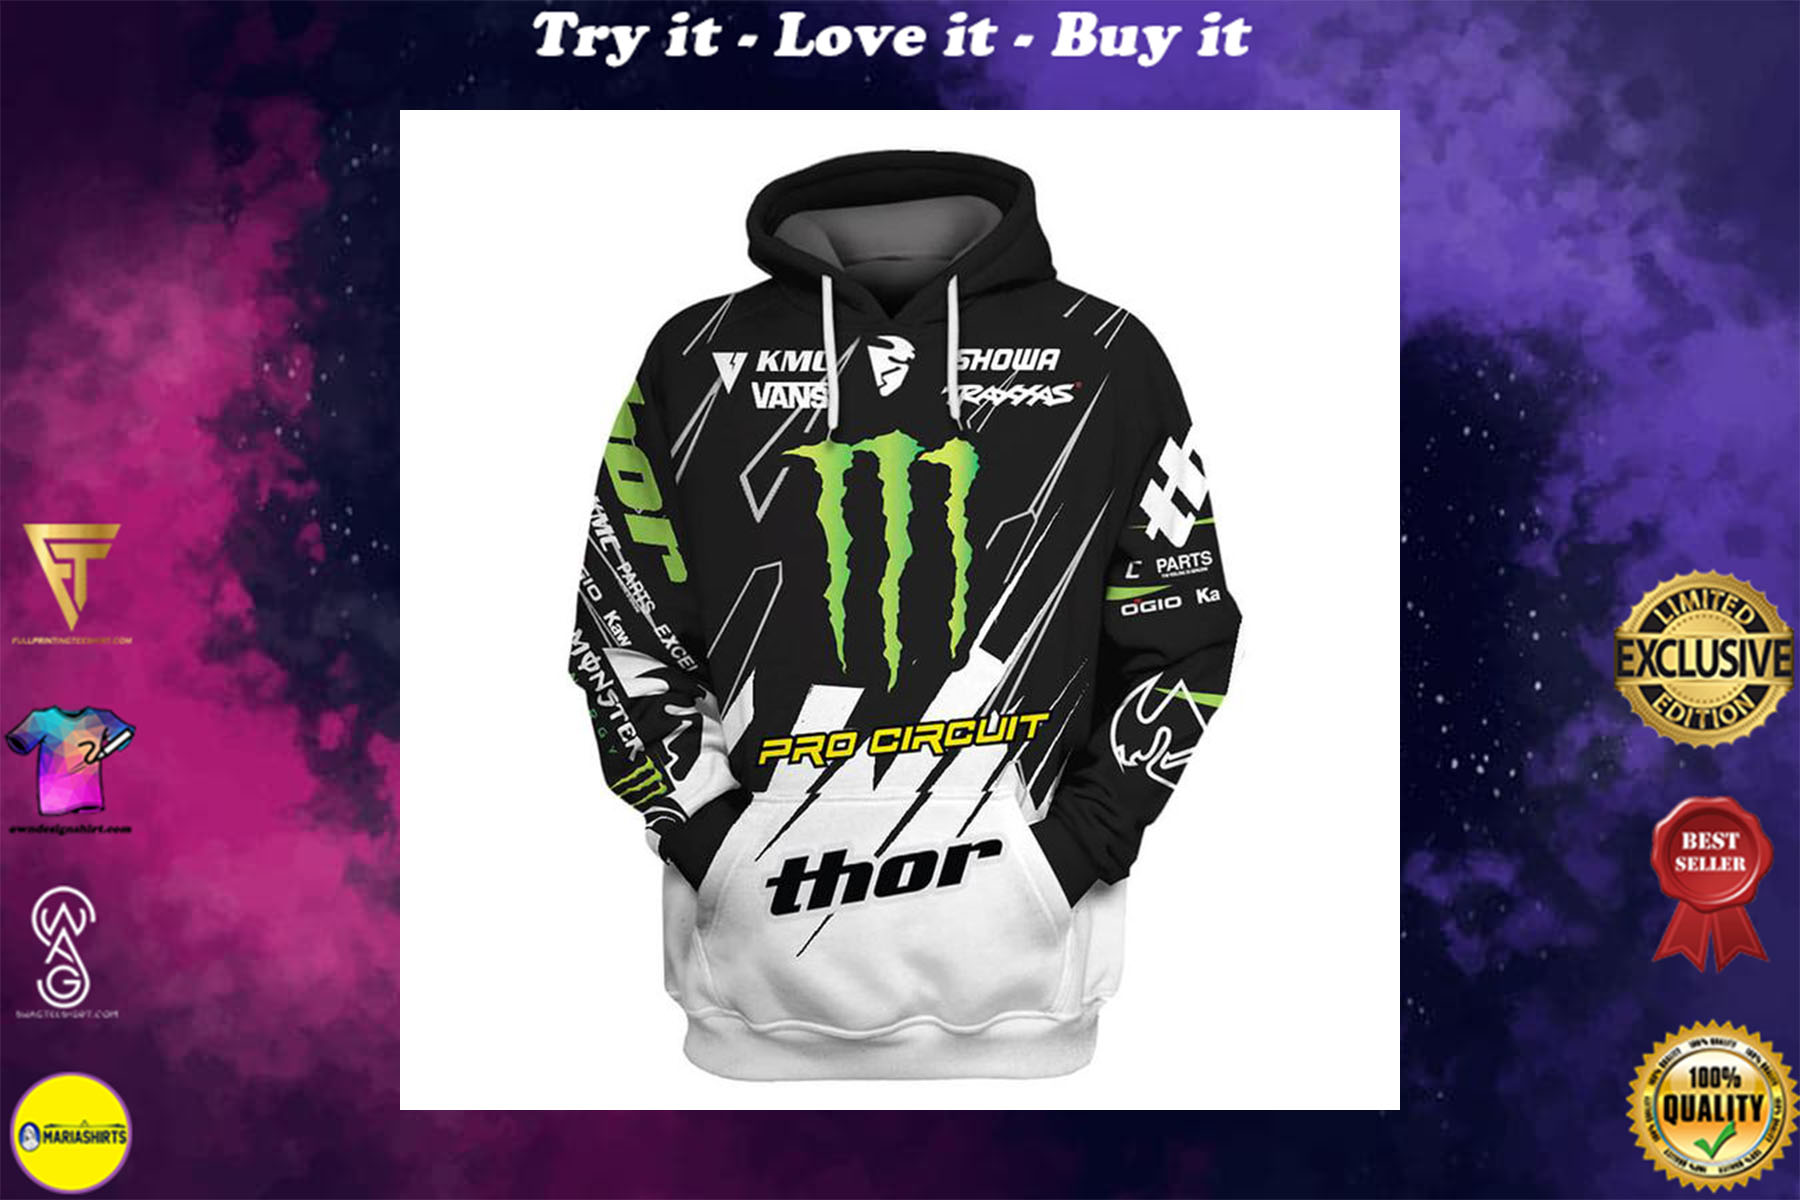 [special edition] monster energy pro circuit racing full printing shirt - maria